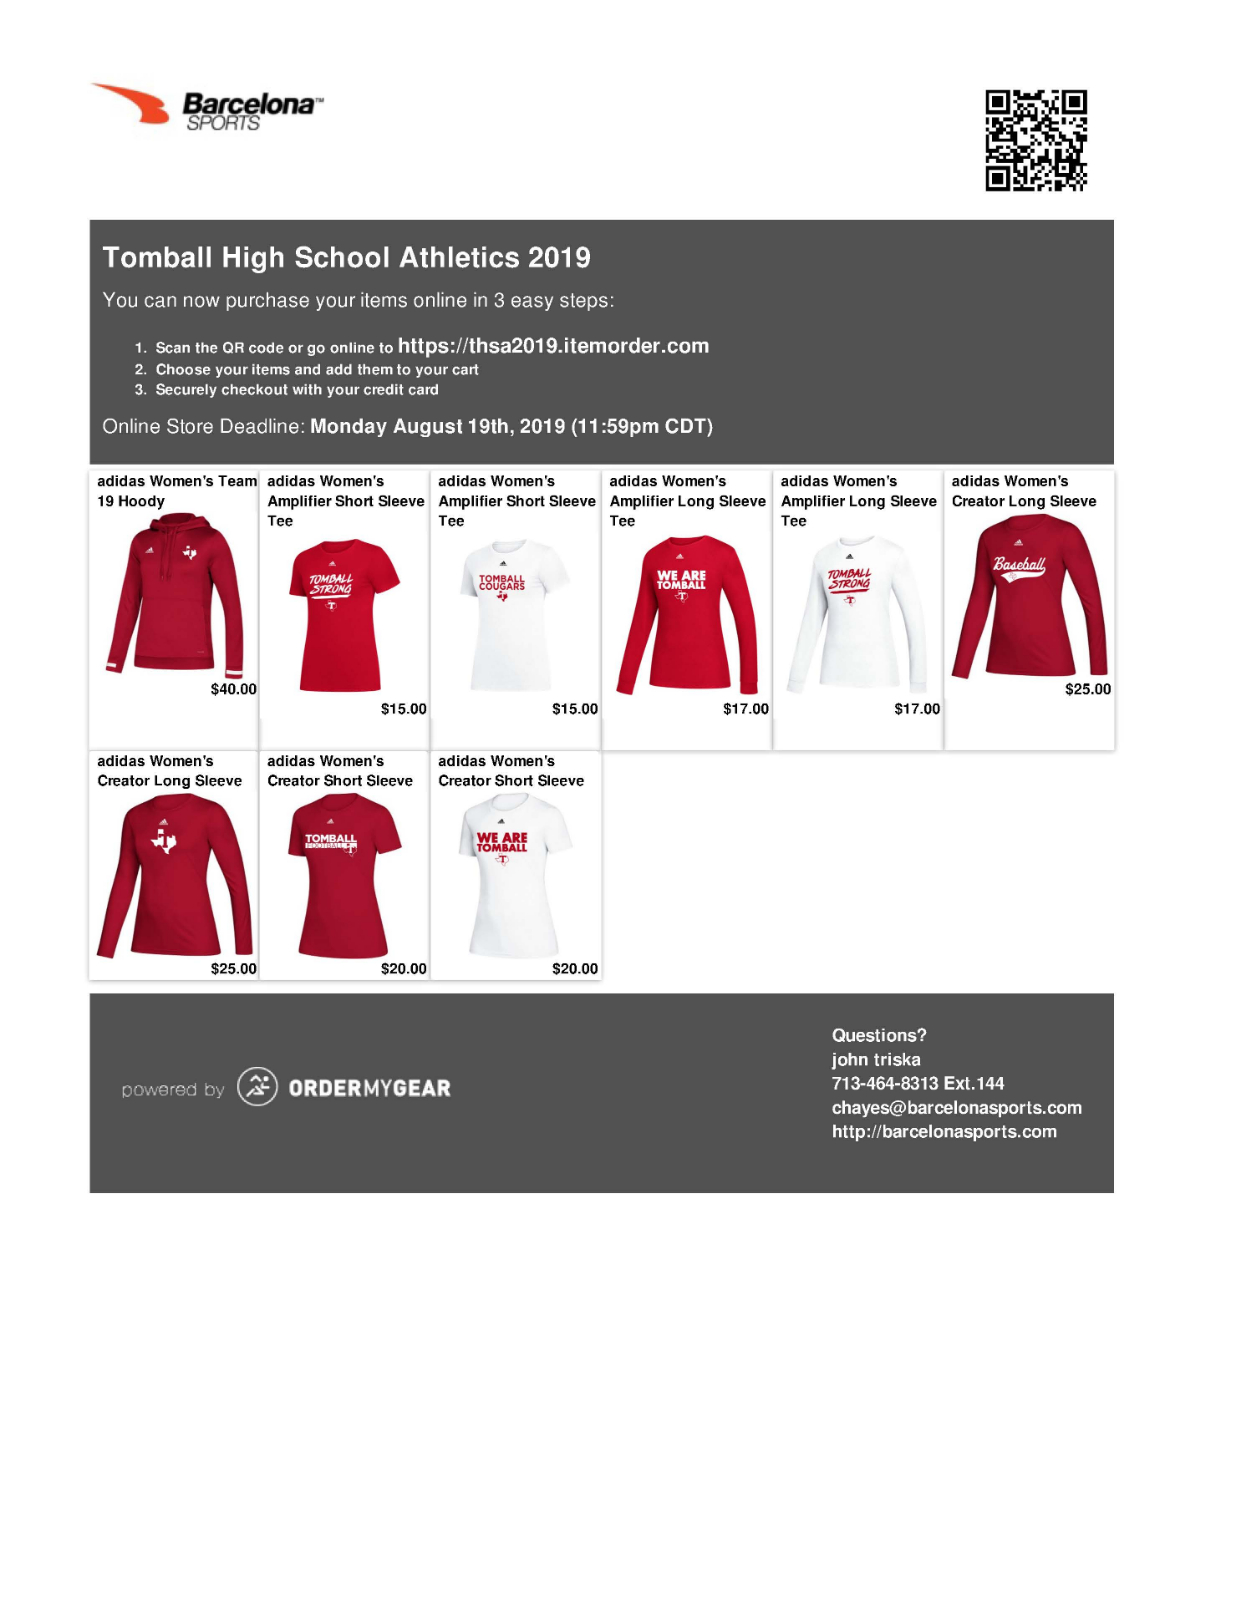 Tomball Cougar Athletic Gear! Order Now!!